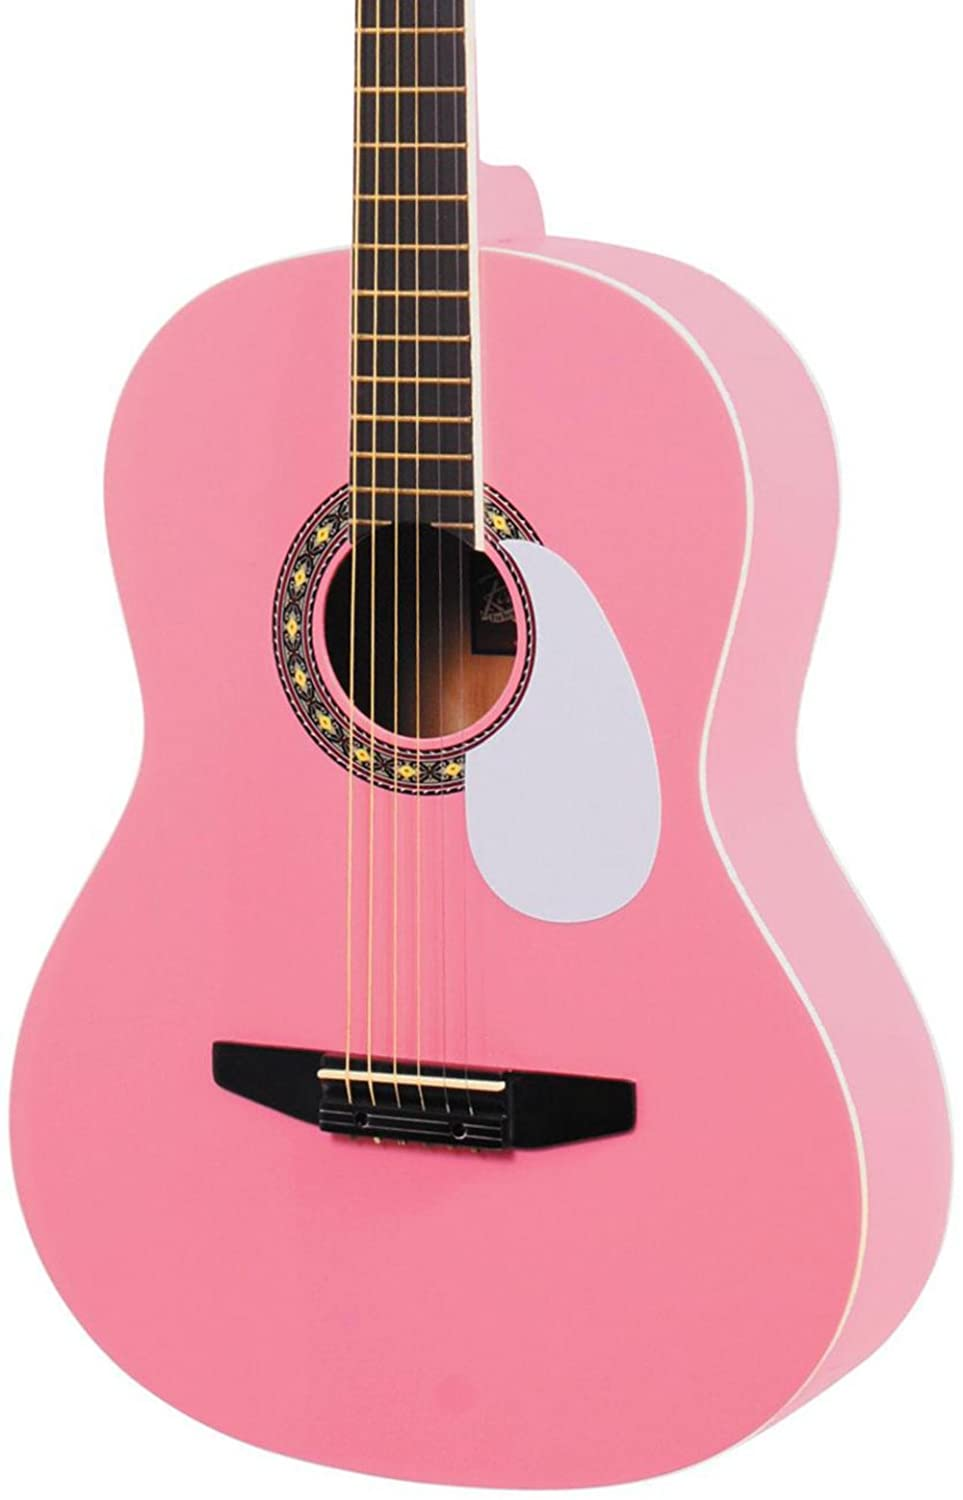 Rogue Starter Acoustic Guitar Pink Musical Instruments How To Make A Circuit Board Pick